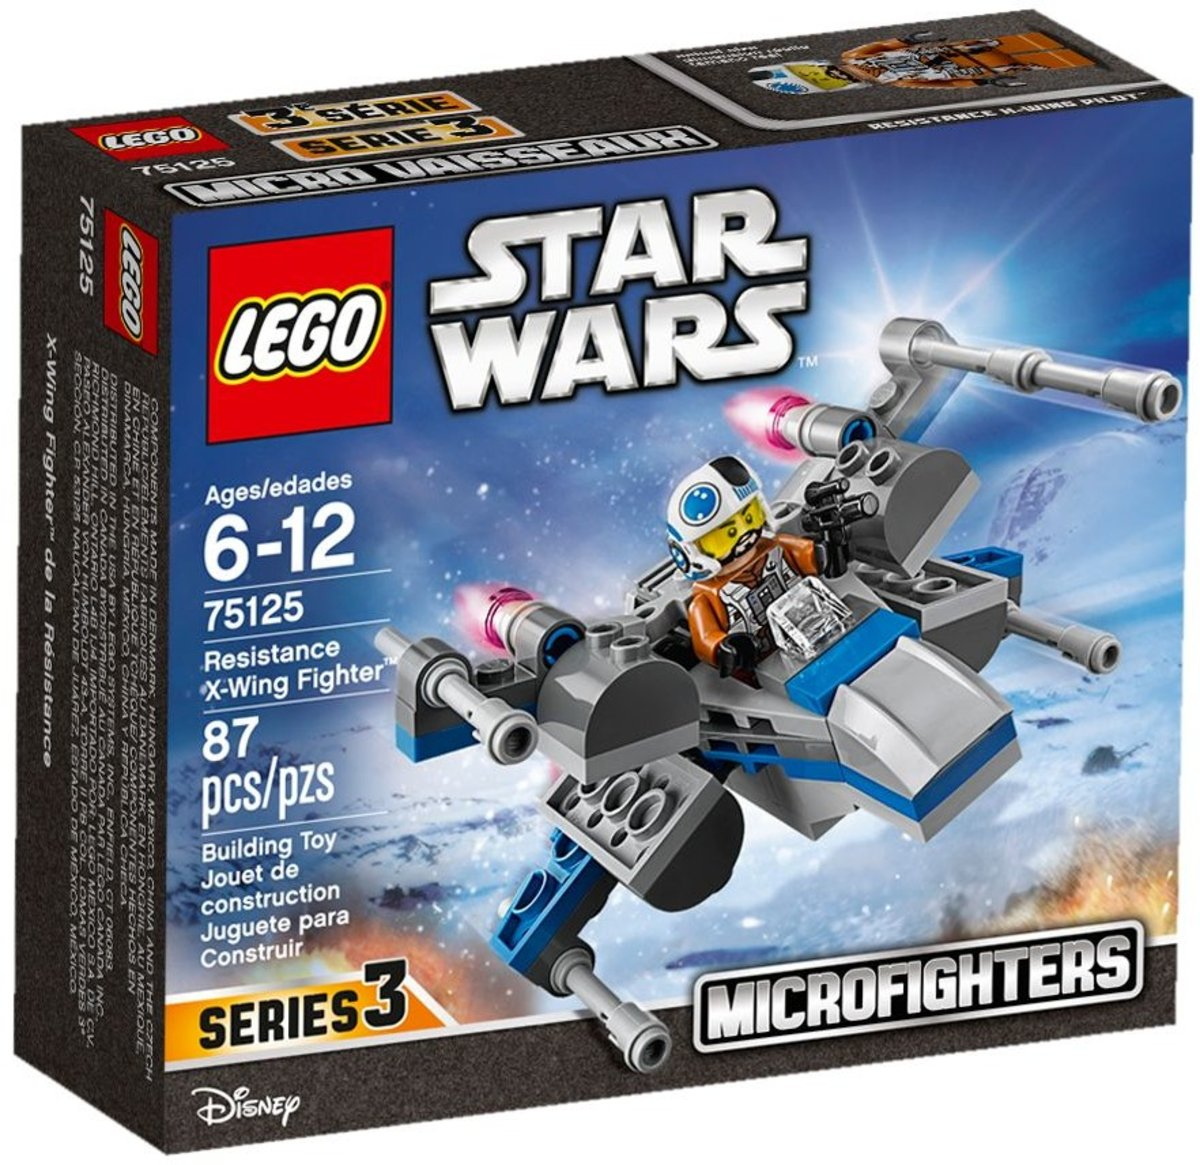 75125 Star Wars - Resistance X-Wing Fighter